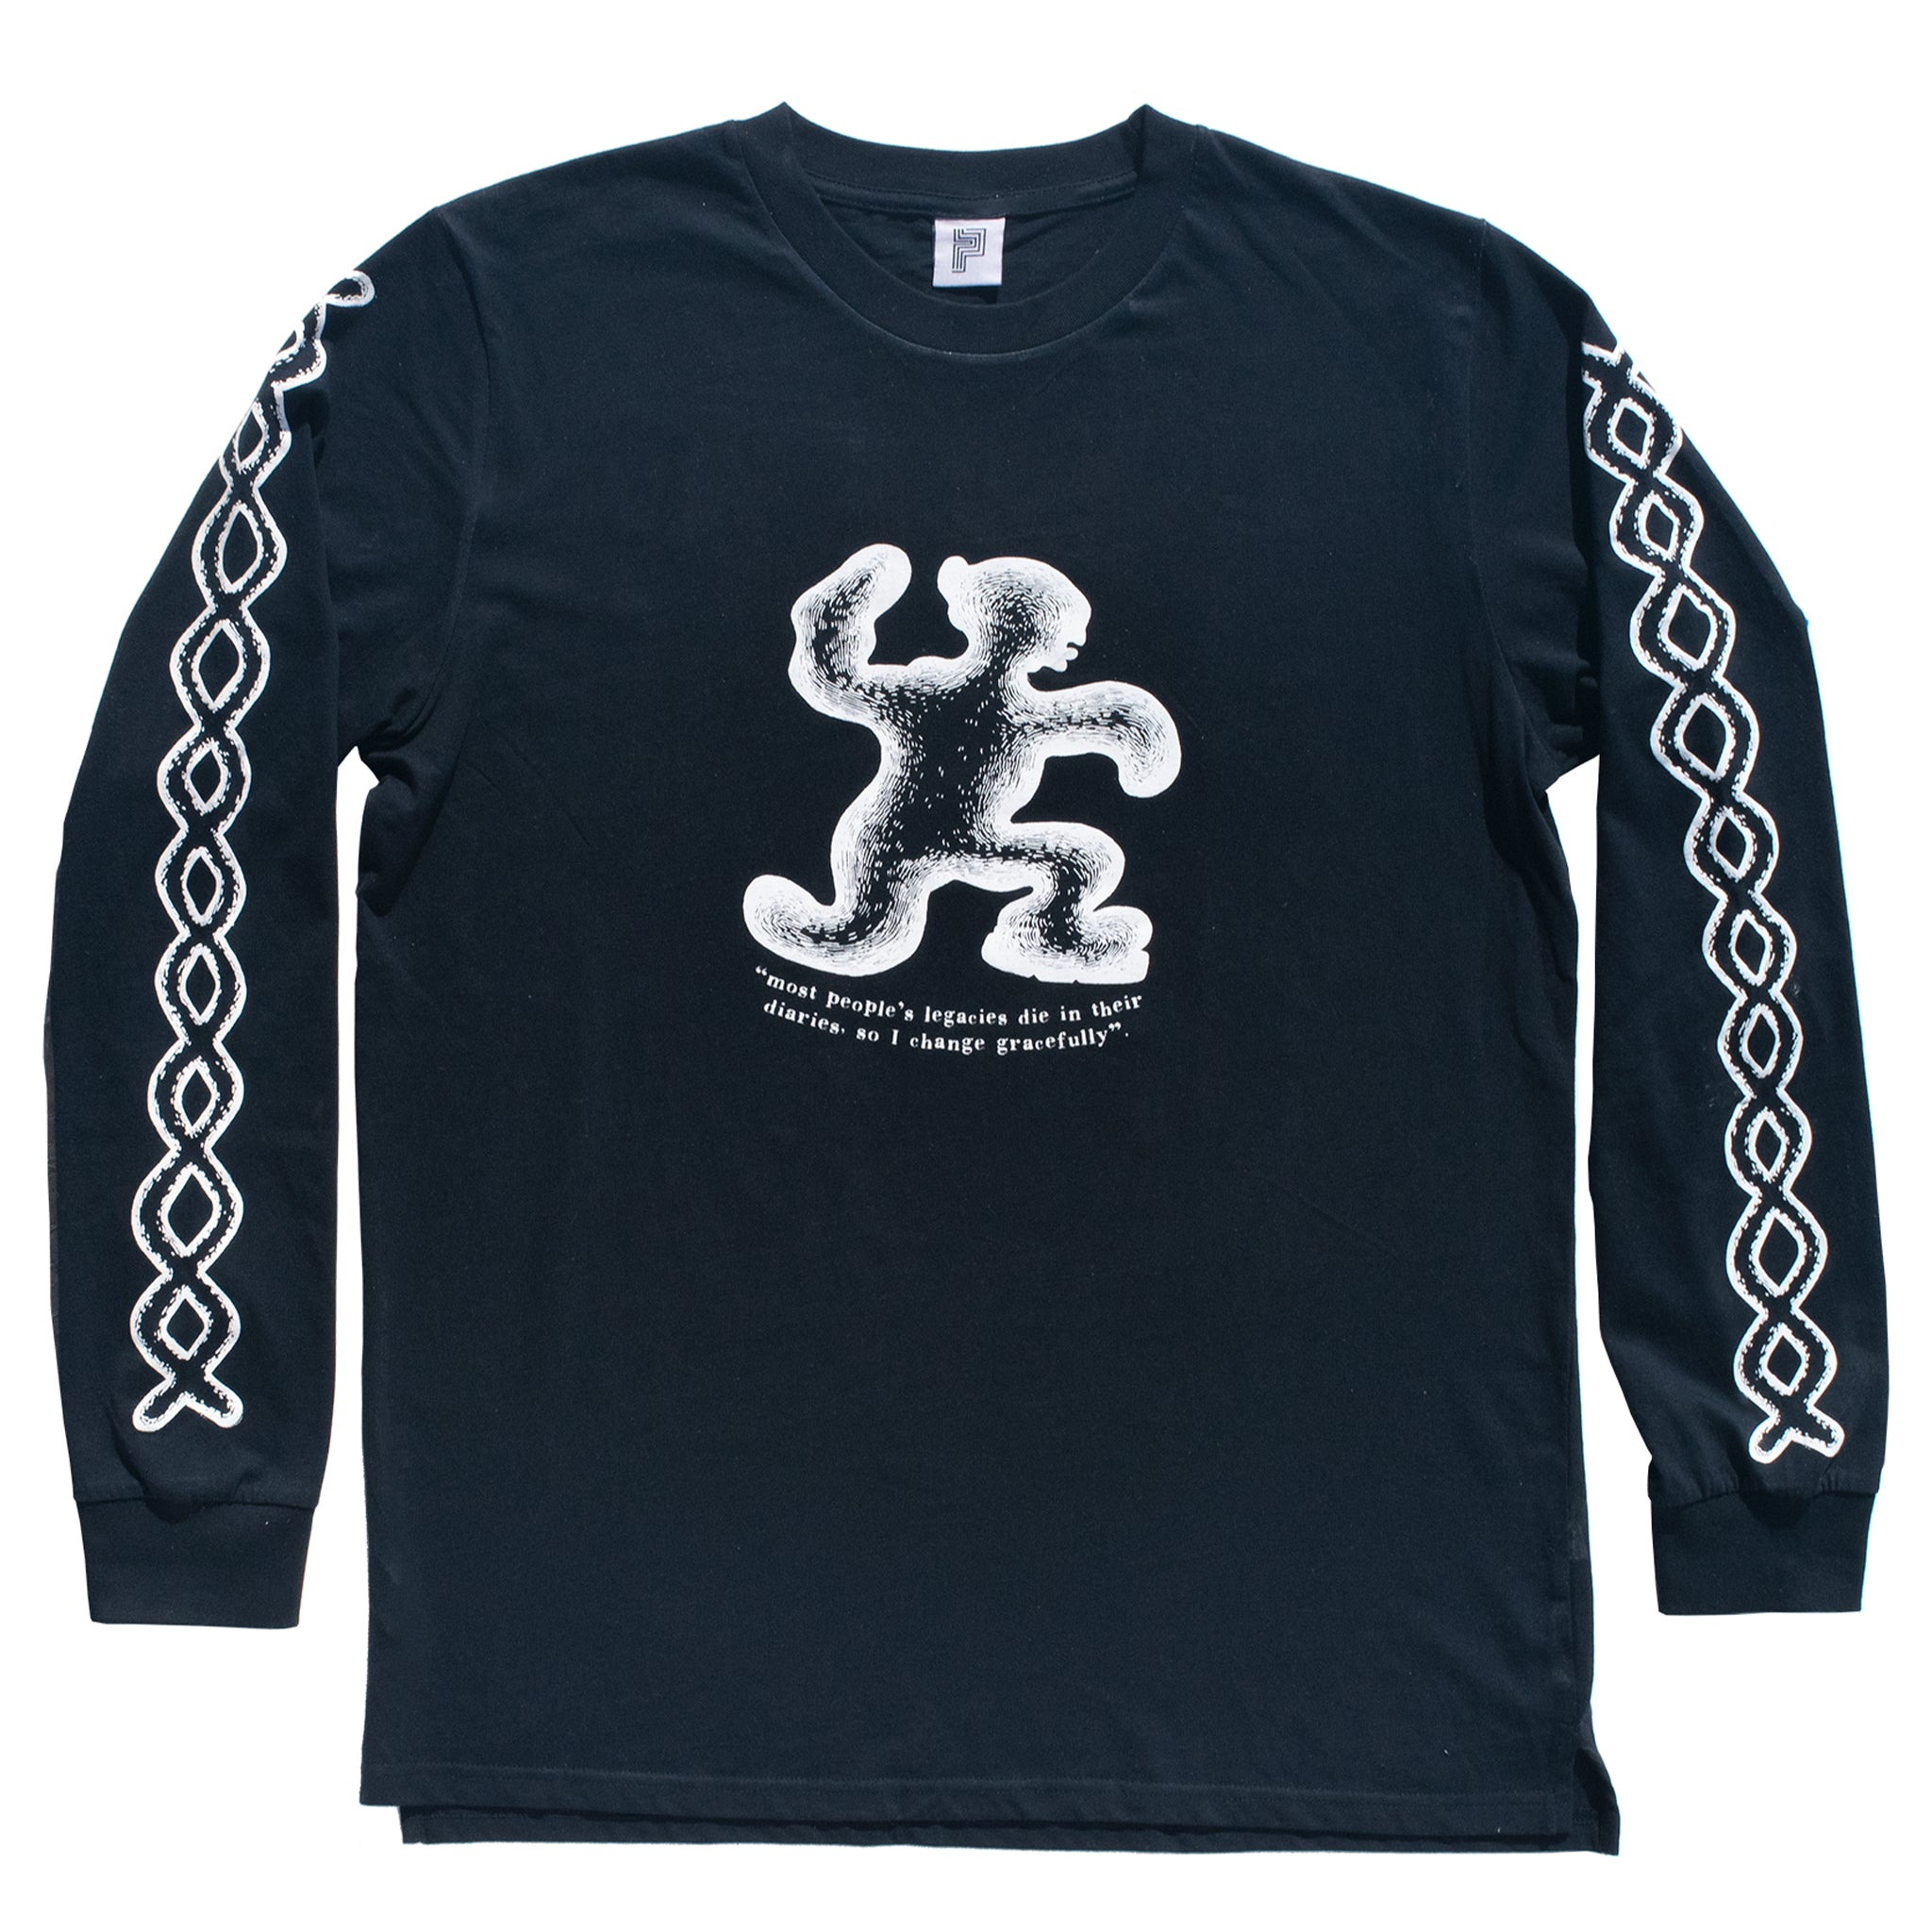 CHANGE GRACEFULLY - RADAMIZ LONG SLEEVE SHIRT